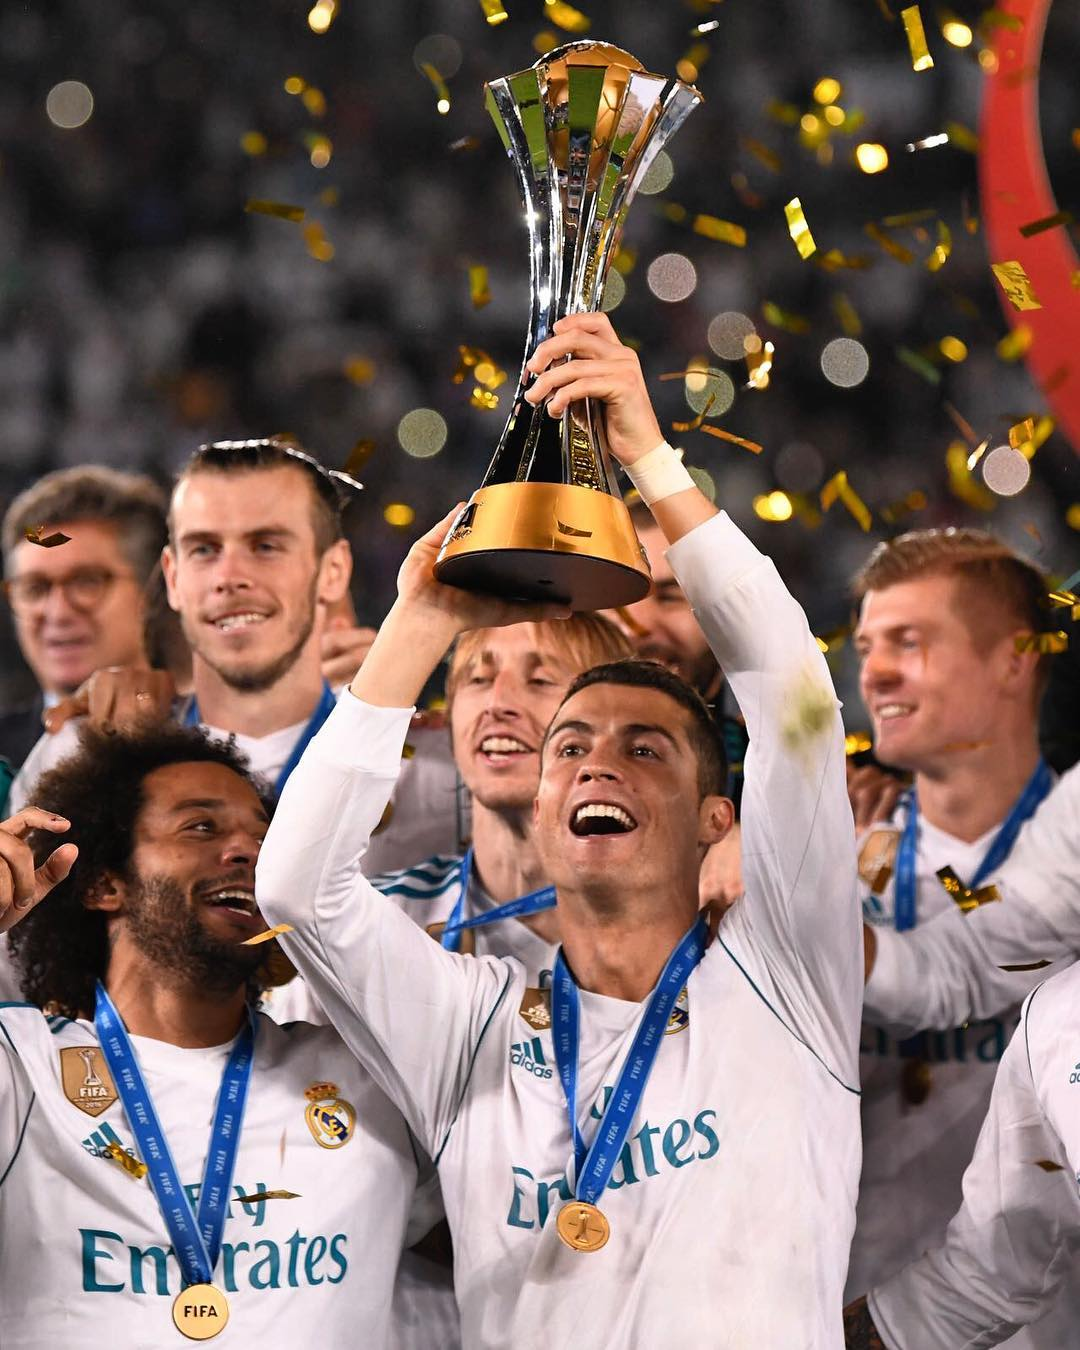 Cristiano Ronaldo is holding a trophy in his hand and his Real Madrid team rejoicing the win of FIFA Club World Cup 2017